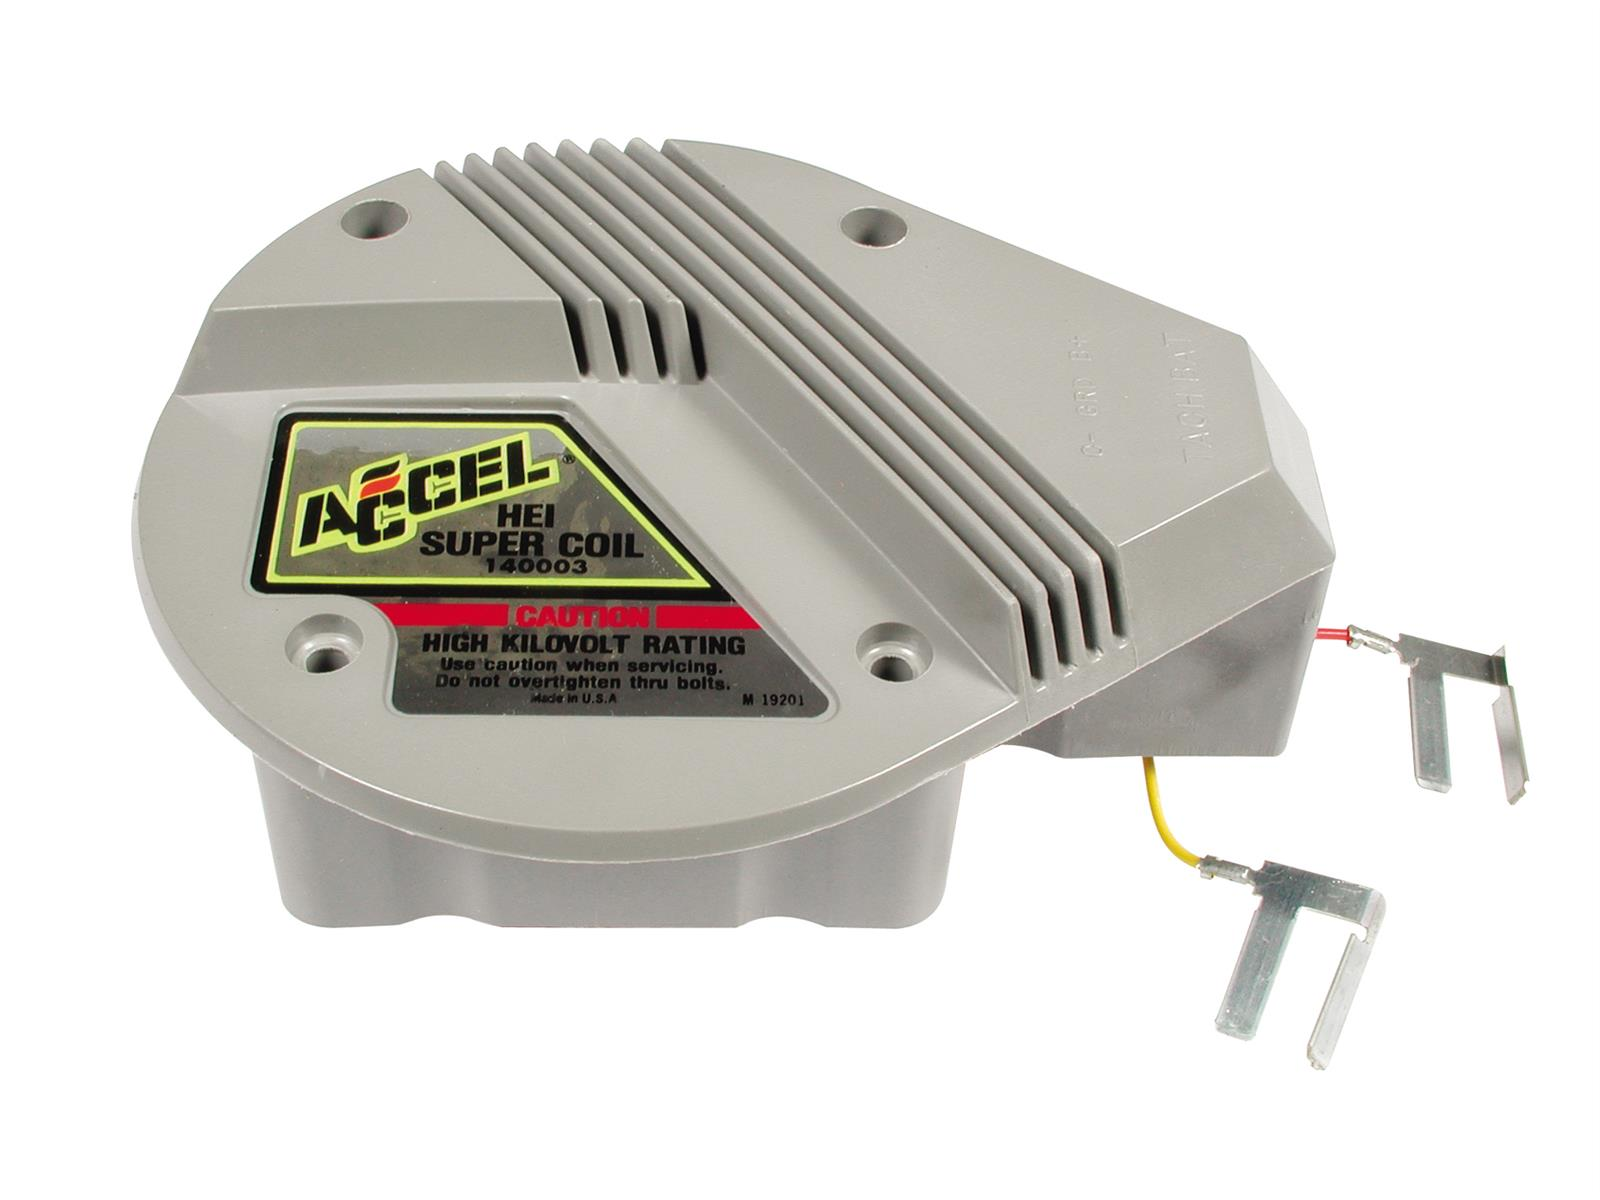 acc 140003_xl accel gm hei in cap super coils 140003 free shipping on orders accel super coil wiring diagram at alyssarenee.co